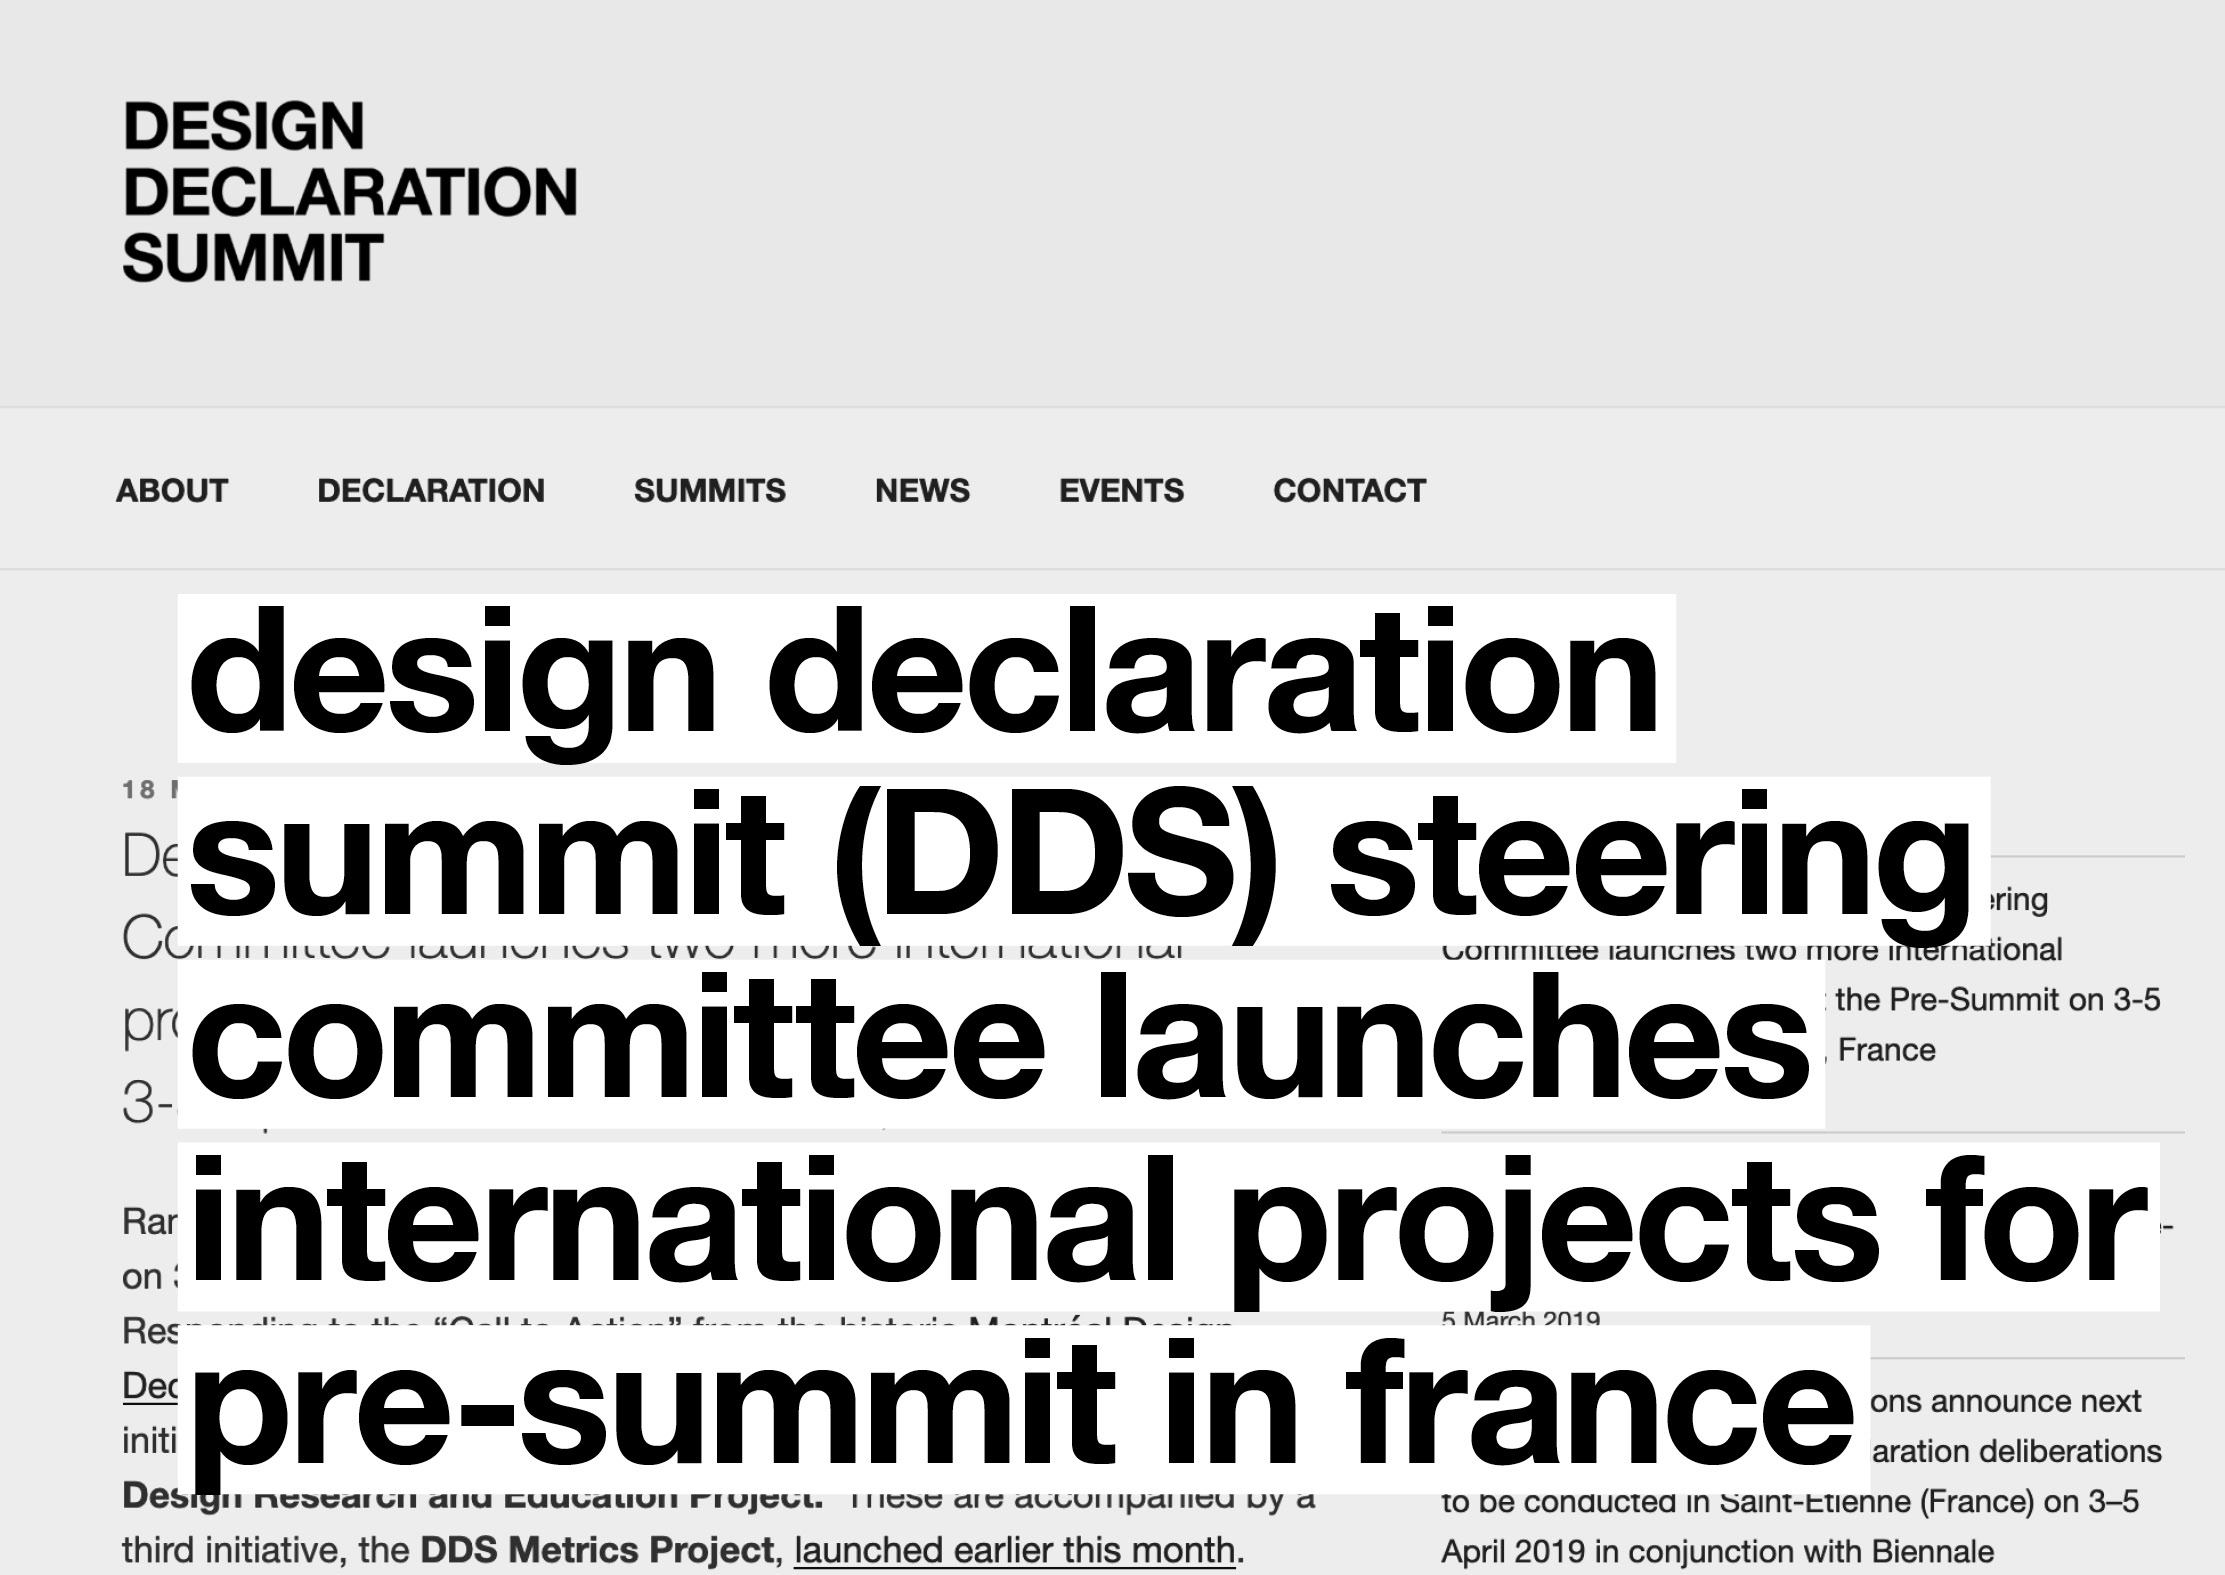 Design Declaration Summit (DDS) Steering Committee launches two more international projects for Pre-Summit in France